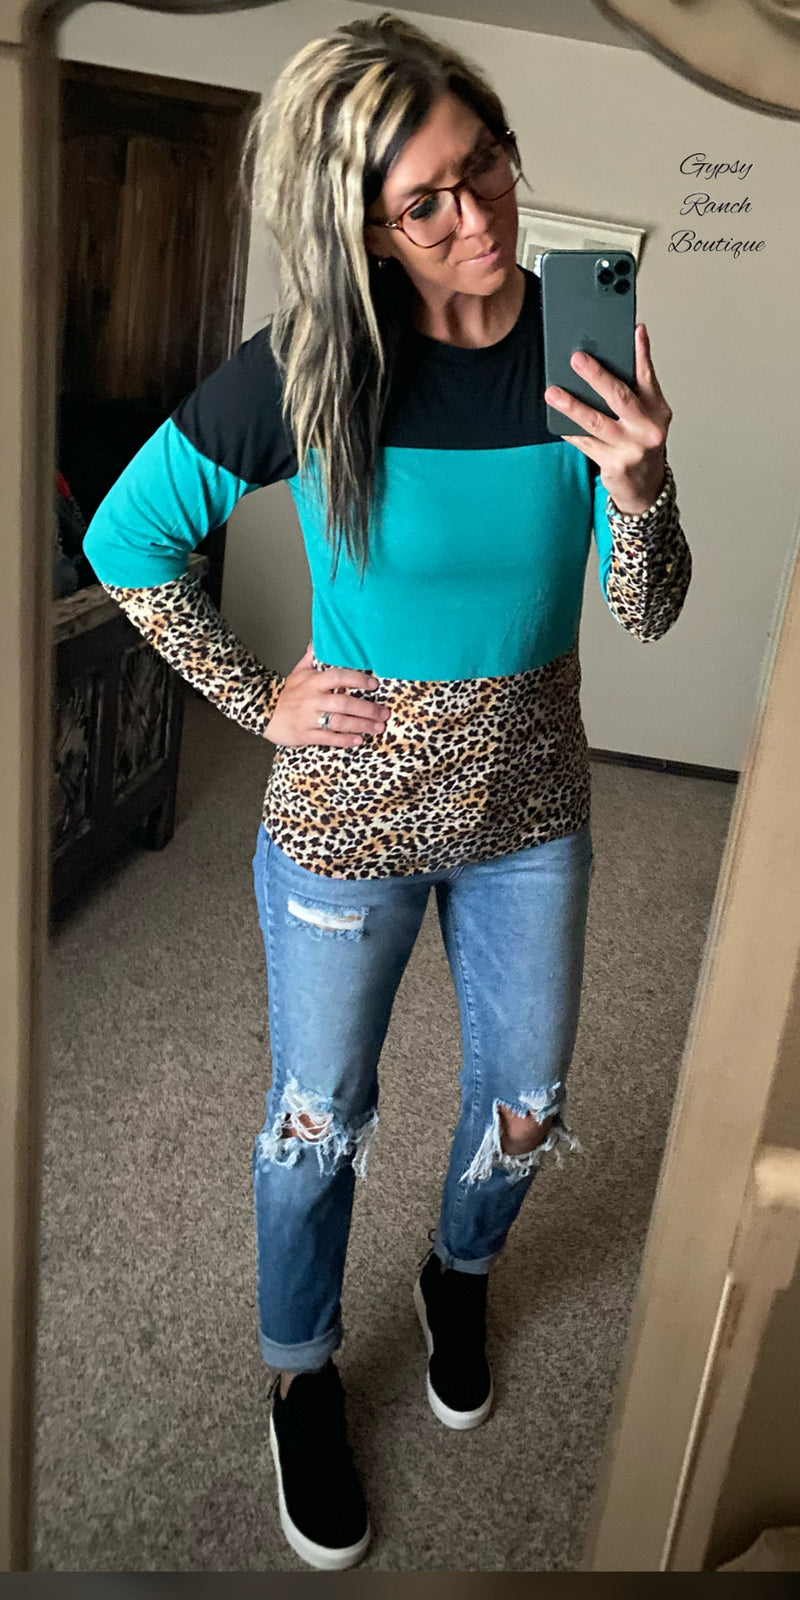 Taylor Turquoise Leopard Top - Also in Plus Size